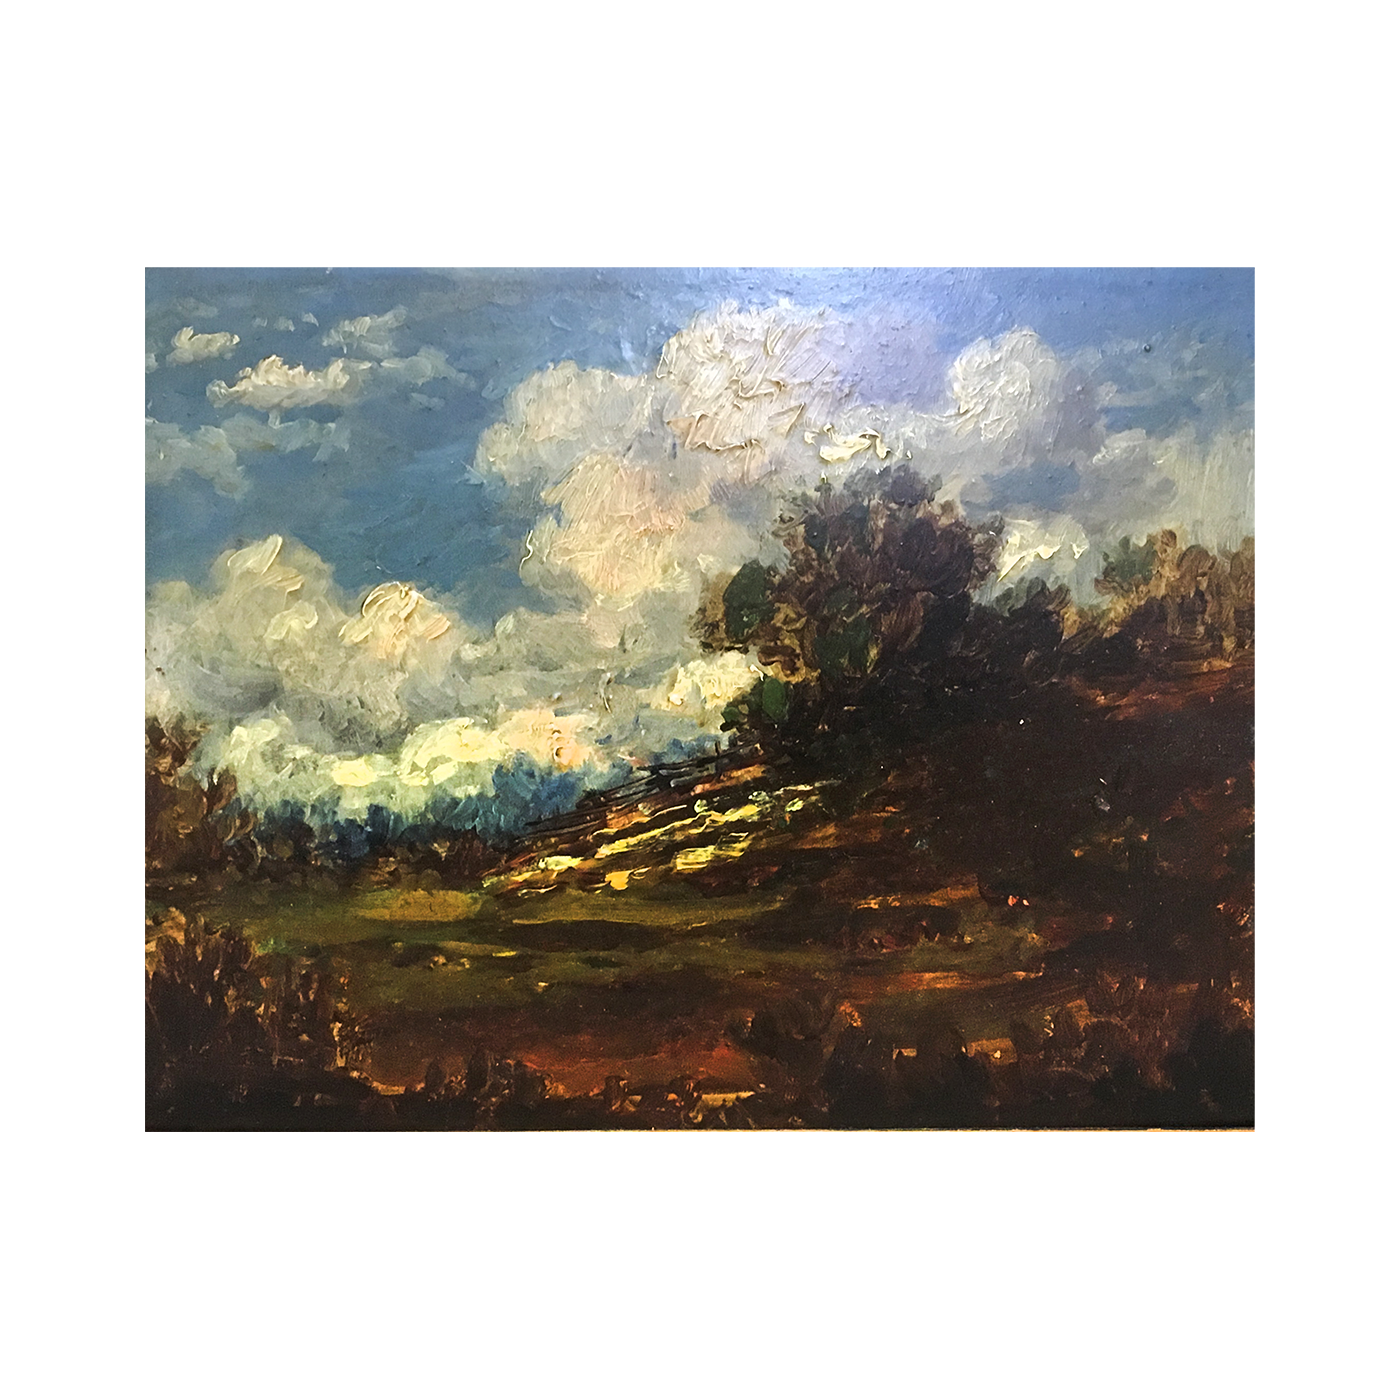 William  Taylor ,American Barbizon school : Cloud study, circa 1880.